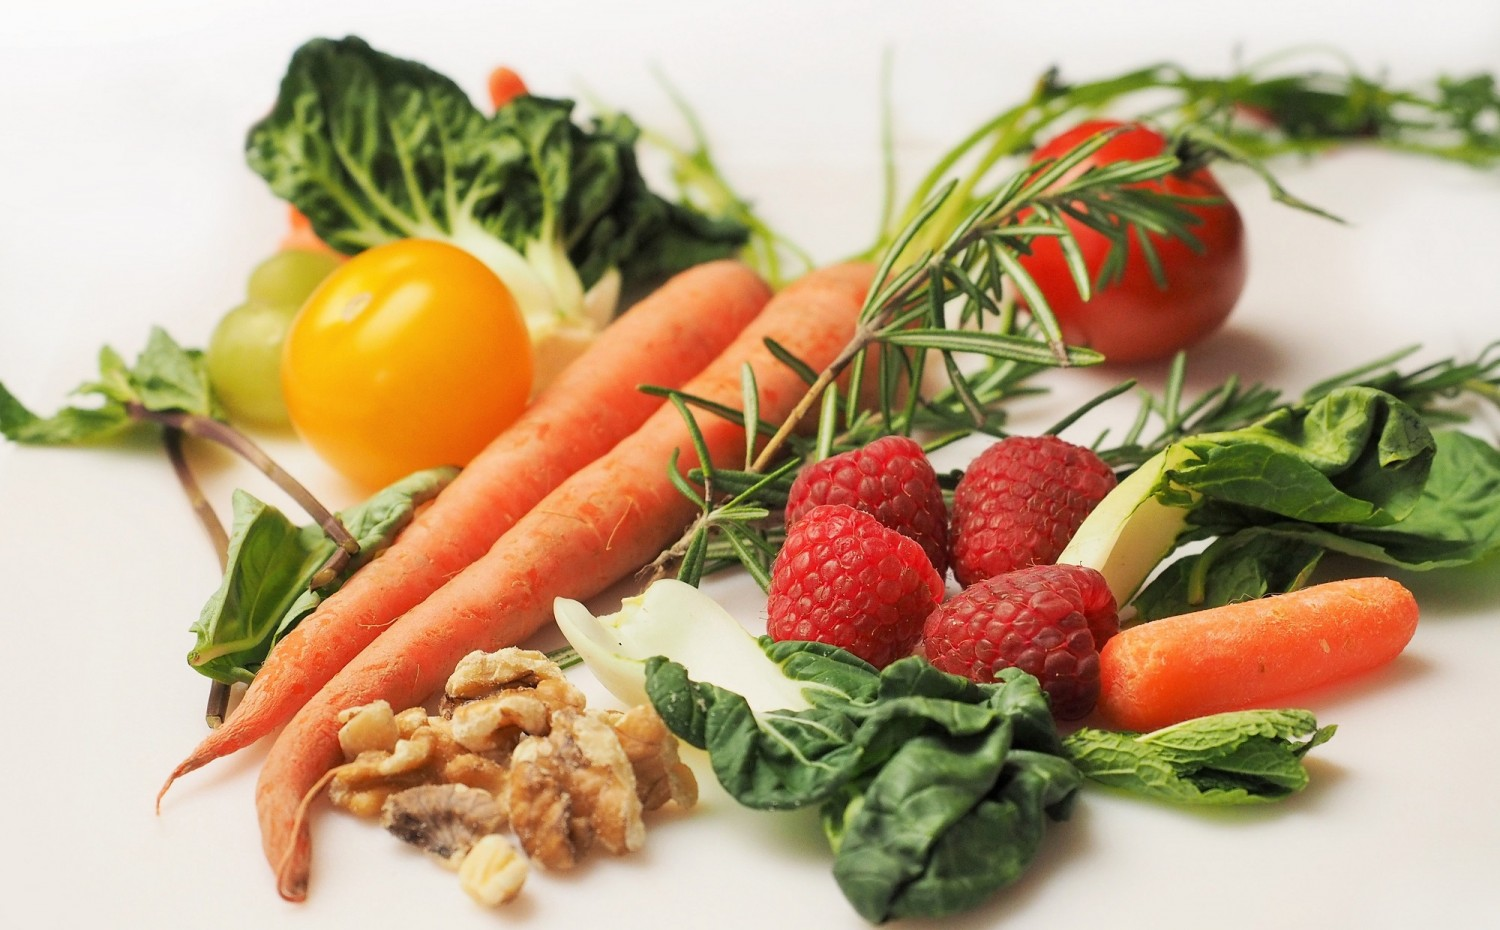 Healthy living starts with our diet | Overcoming MS